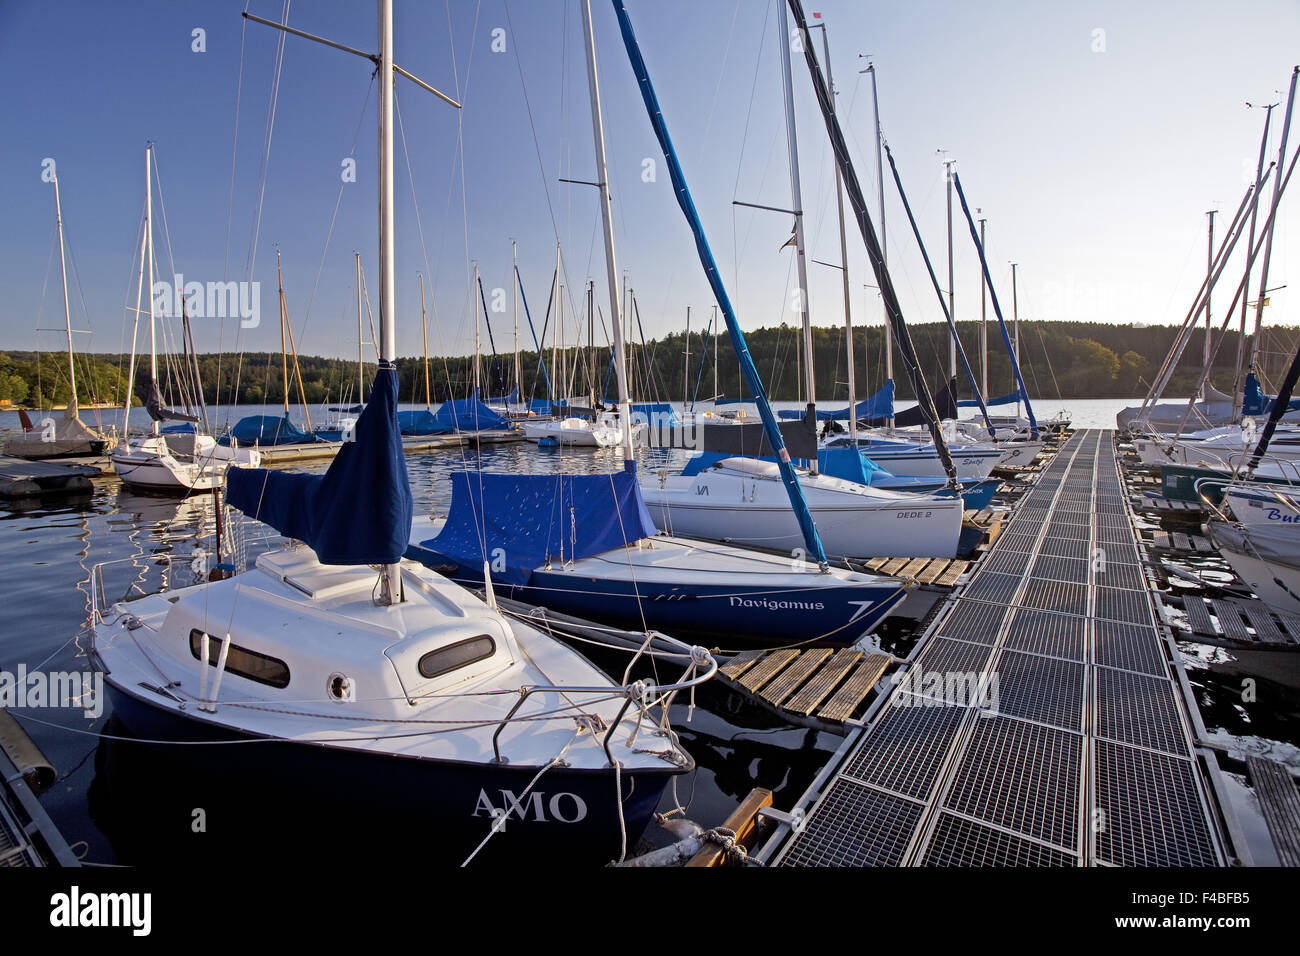 Sailing boats on the reservoir Moehne - Stock Image